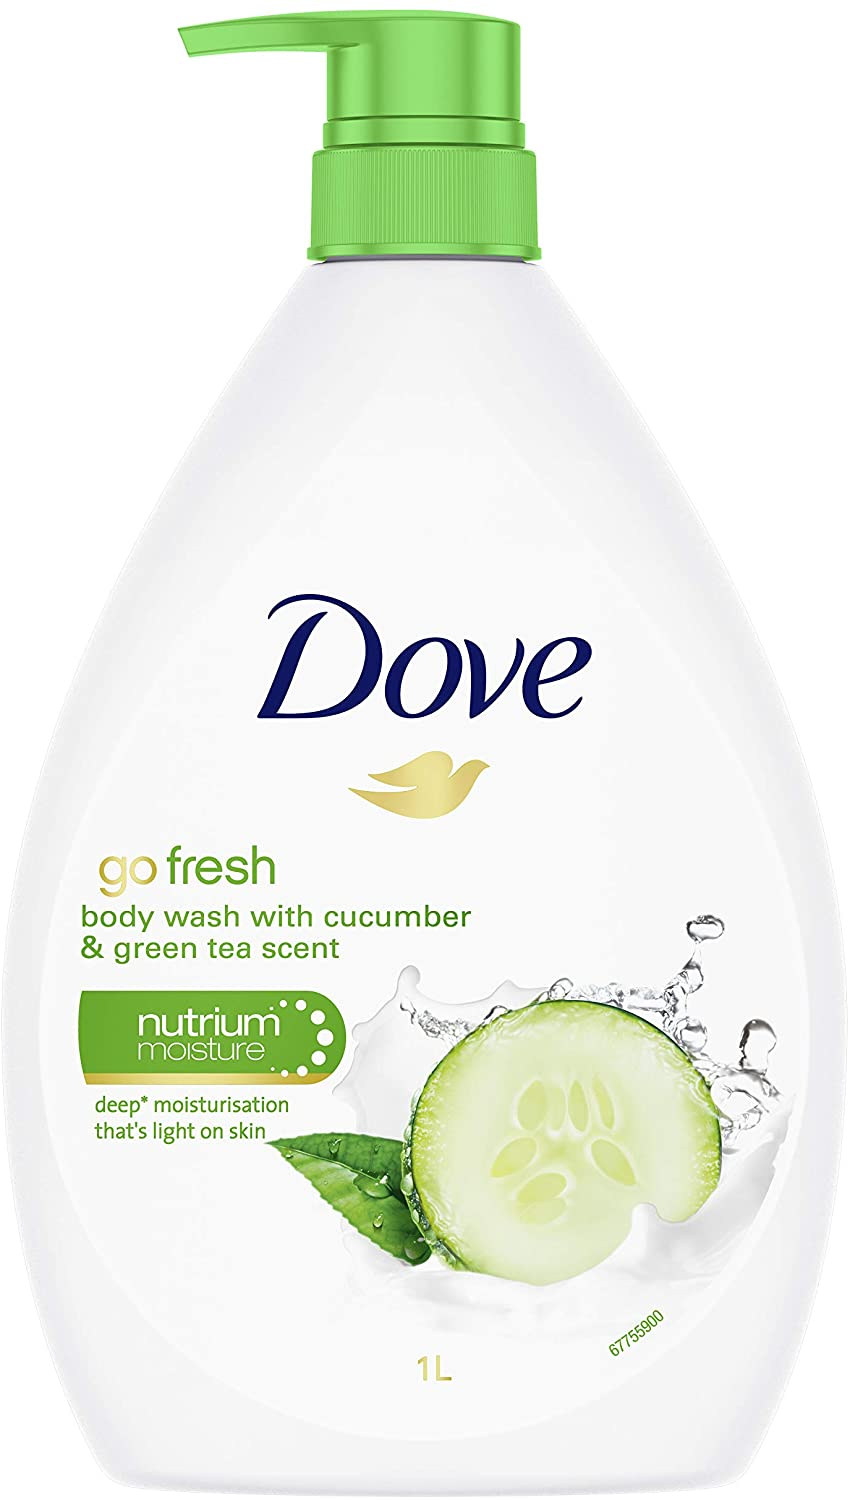 Dove Body Wash 1L $6.49 ($5.84 with S&S) Delivered with Prime @ Amazon AU